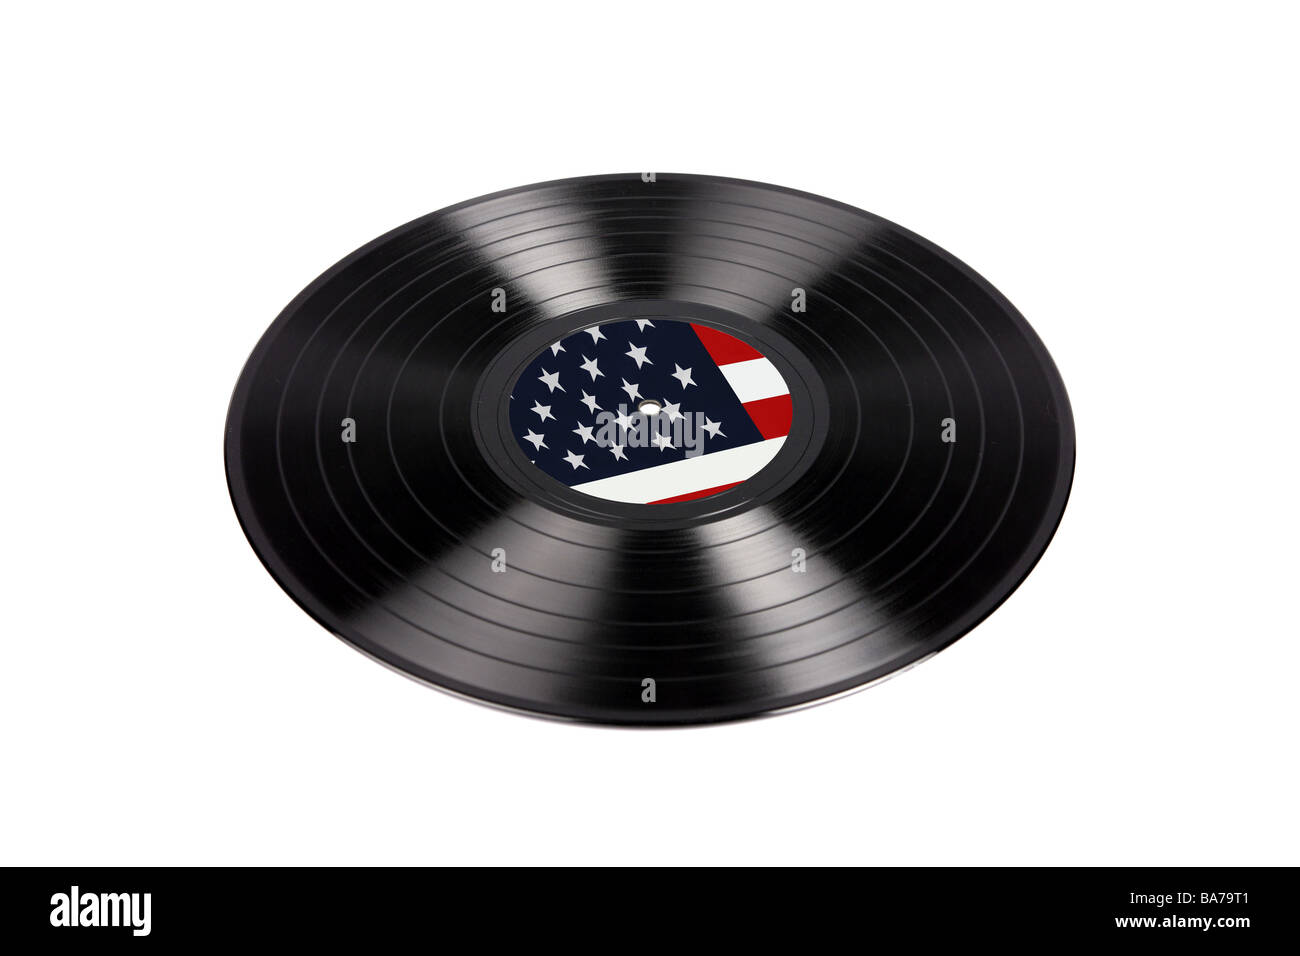 1960s LP vinly recording with a US Stars and stripes Label usually associated with the anti Vietnam movement and - Stock Image